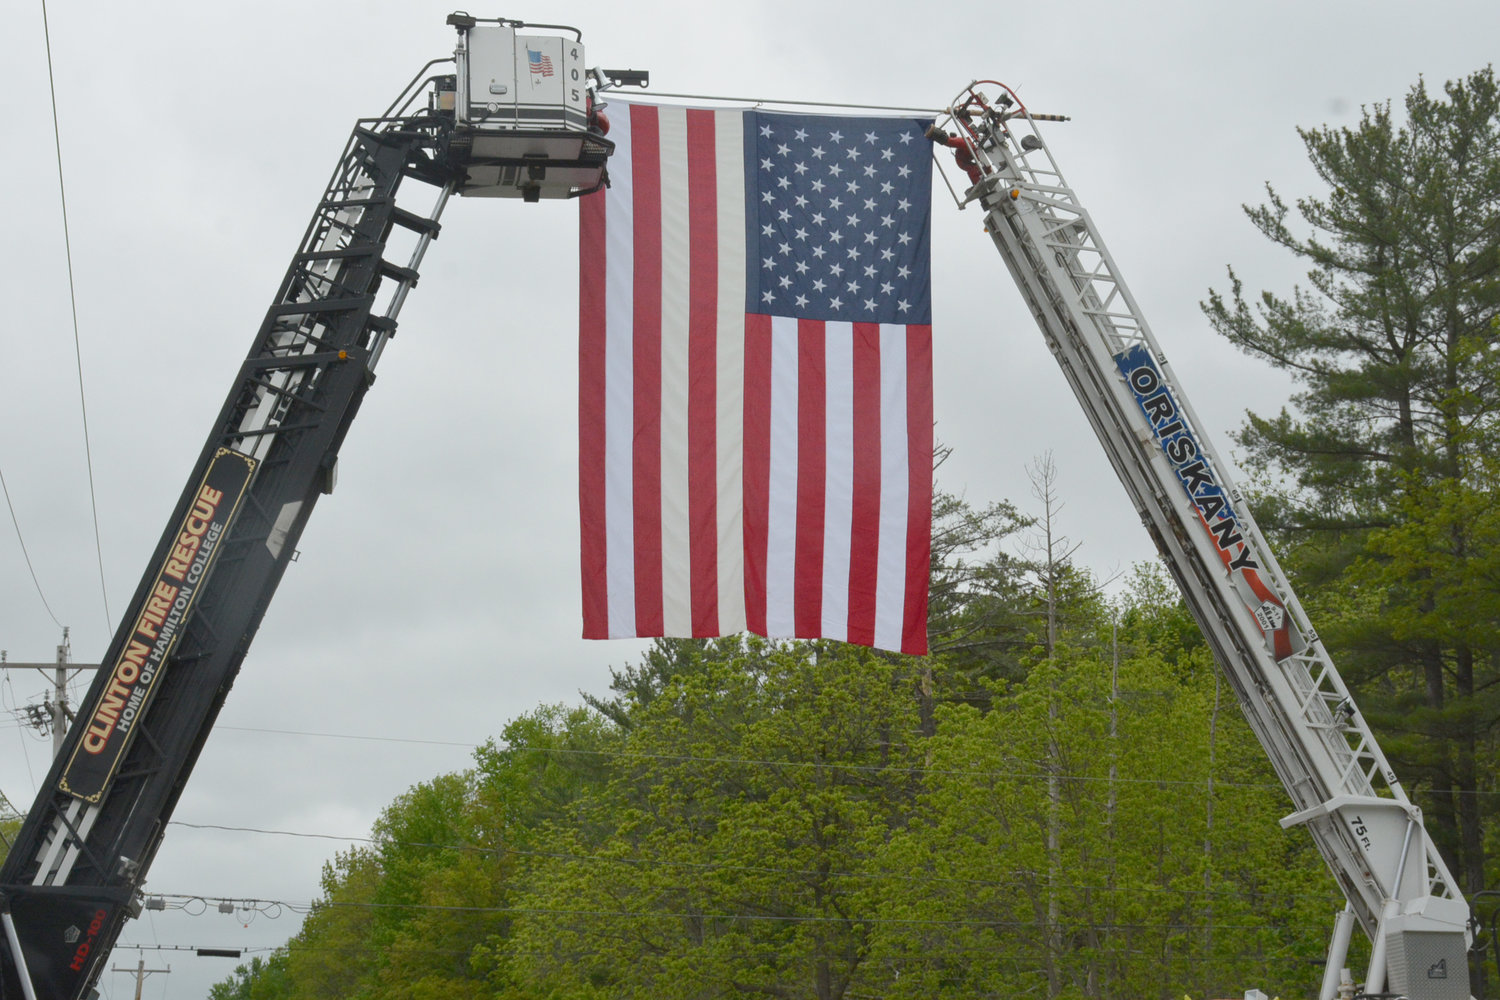 DEPARTMENTS BAND TOGETHER — The Clinton and Oriskany Volunteer Fire Departments hoisted the flag in honor of Willowvale Fire Co. Fire Chief Wayne Smoulcey on Franklin Ave. in Clinton on Wednesday, May 29. The funeral procession involved Utica and Kirkland Police Departments, also the Oneida County Sheriffs Office as it carried the honored dead to his final resting place at the Sunset Hill Cemetery.